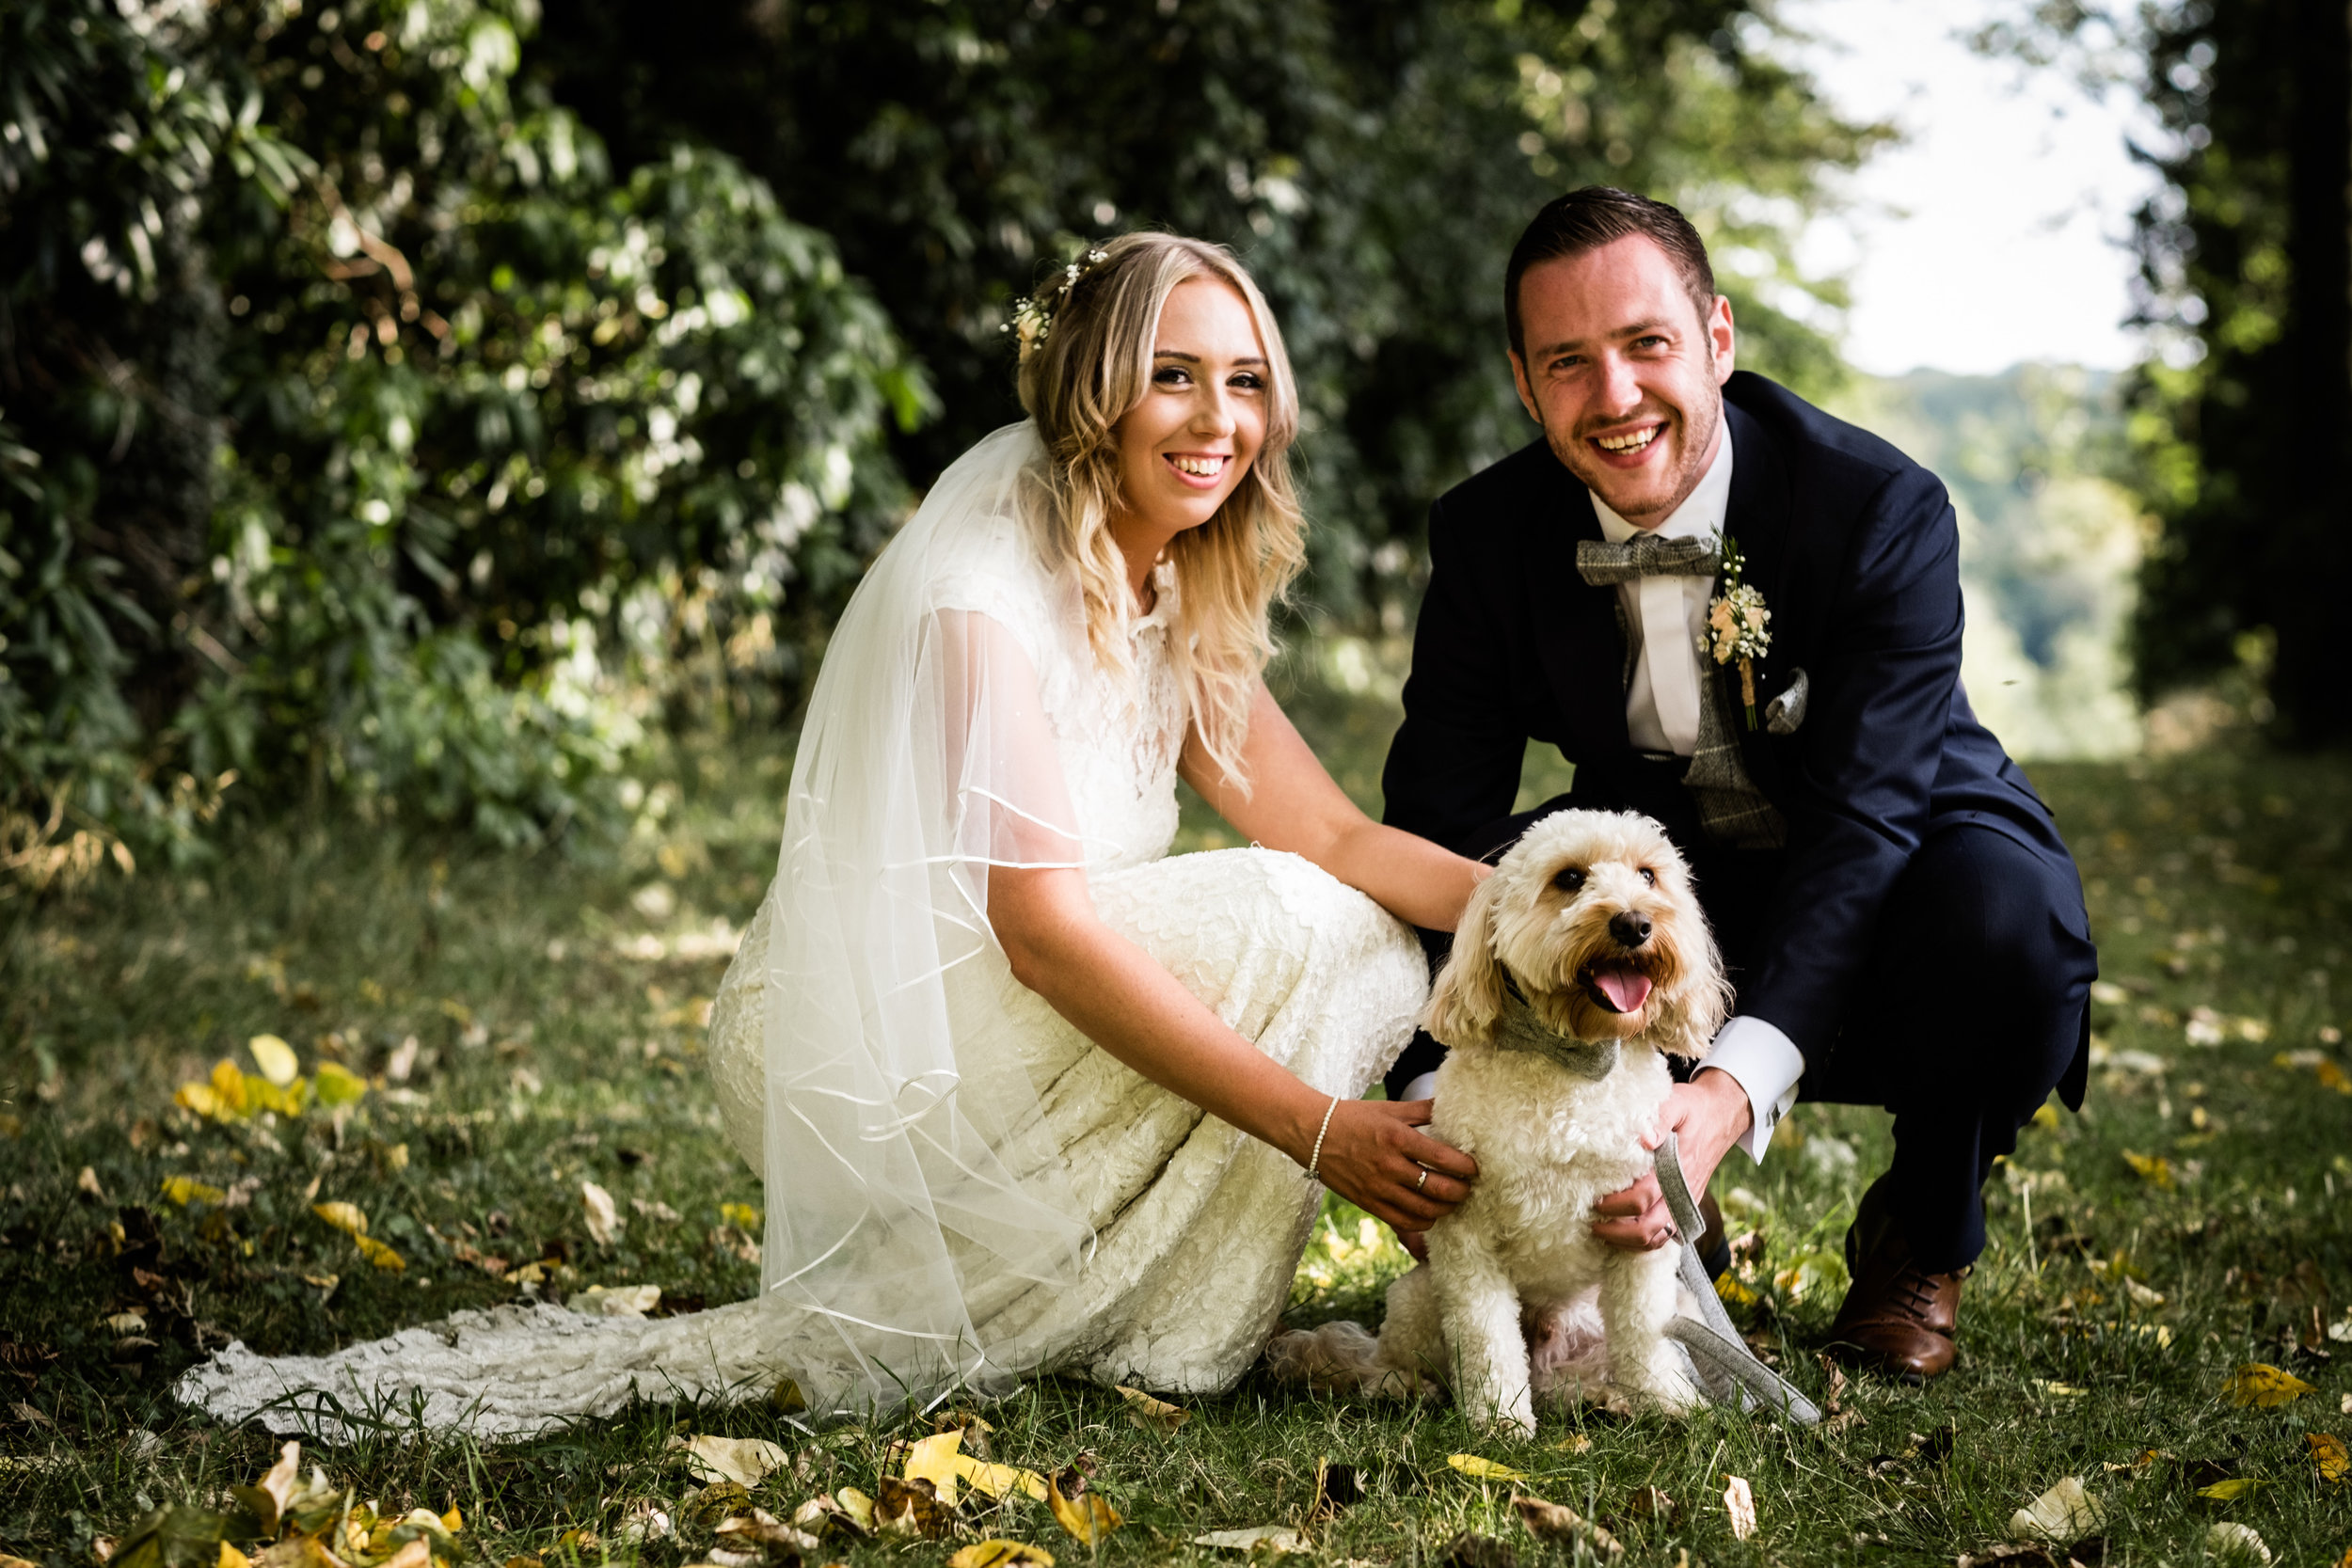 Summer Documentary Wedding Photography at Consall Hall Gardens Outdoor Ceremony Cockapoo dog - Jenny Harper-60.jpg